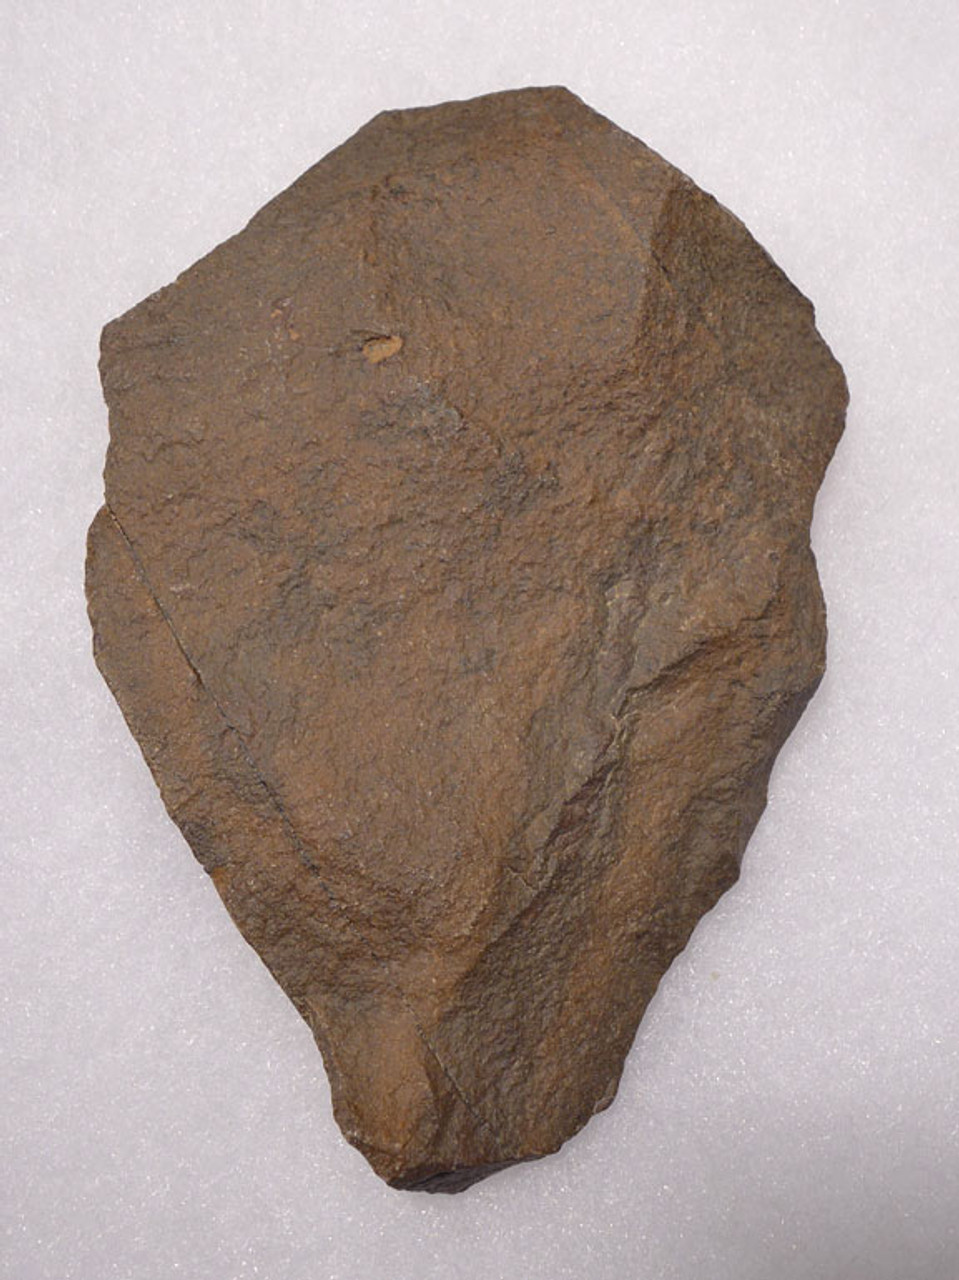 ACH239  - ACHEULIAN QUARTZITE HANDAXE MADE BY HOMO ERGASTER WITH ATTRACTIVE PATINA COLORS